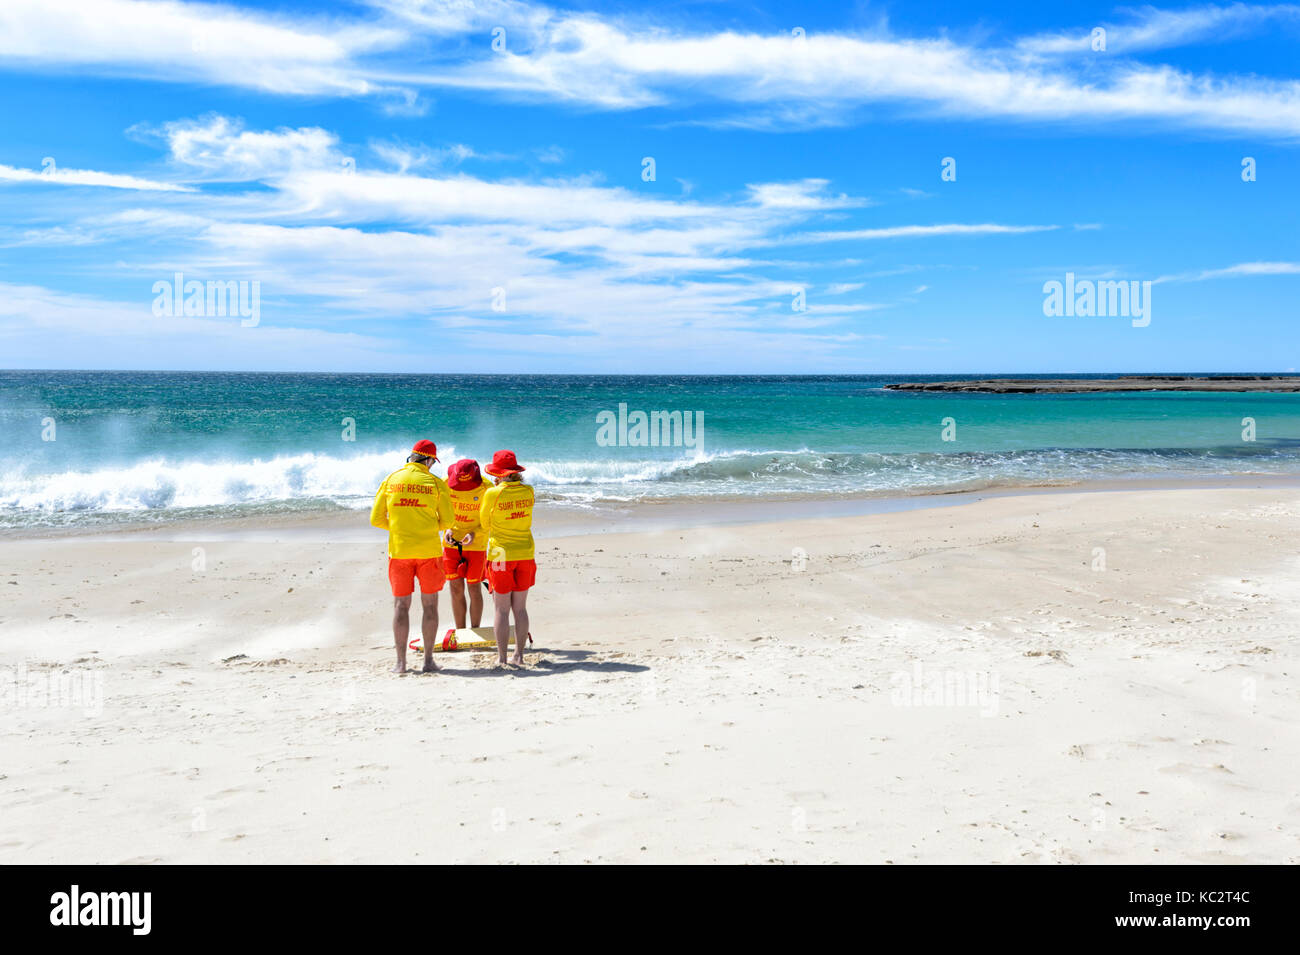 three-lifeguards-standing-on-the-beach-a